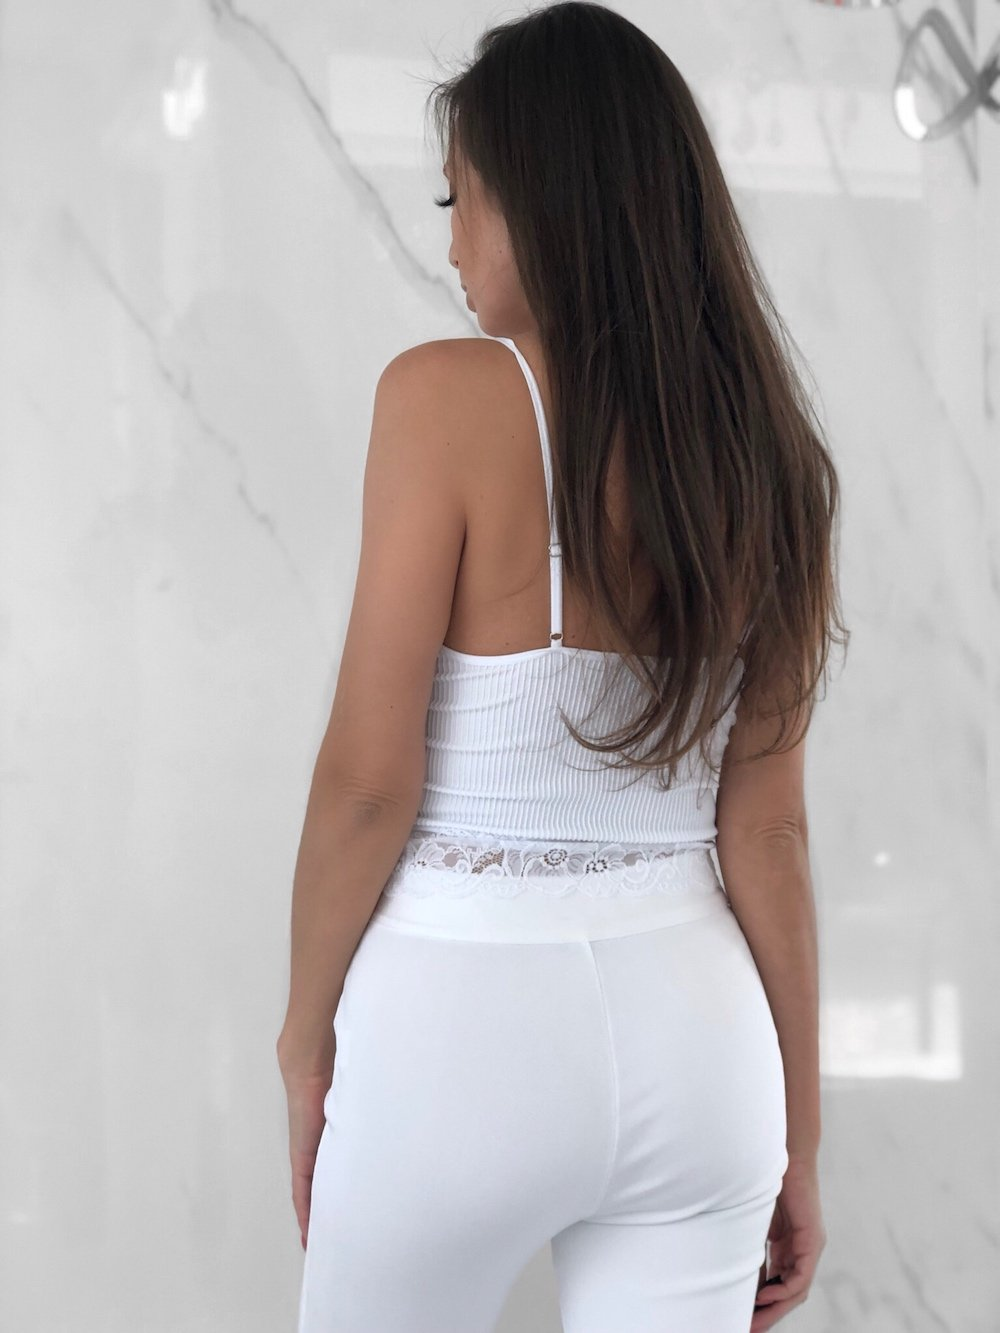 Cadiz Top, Women's White Tops